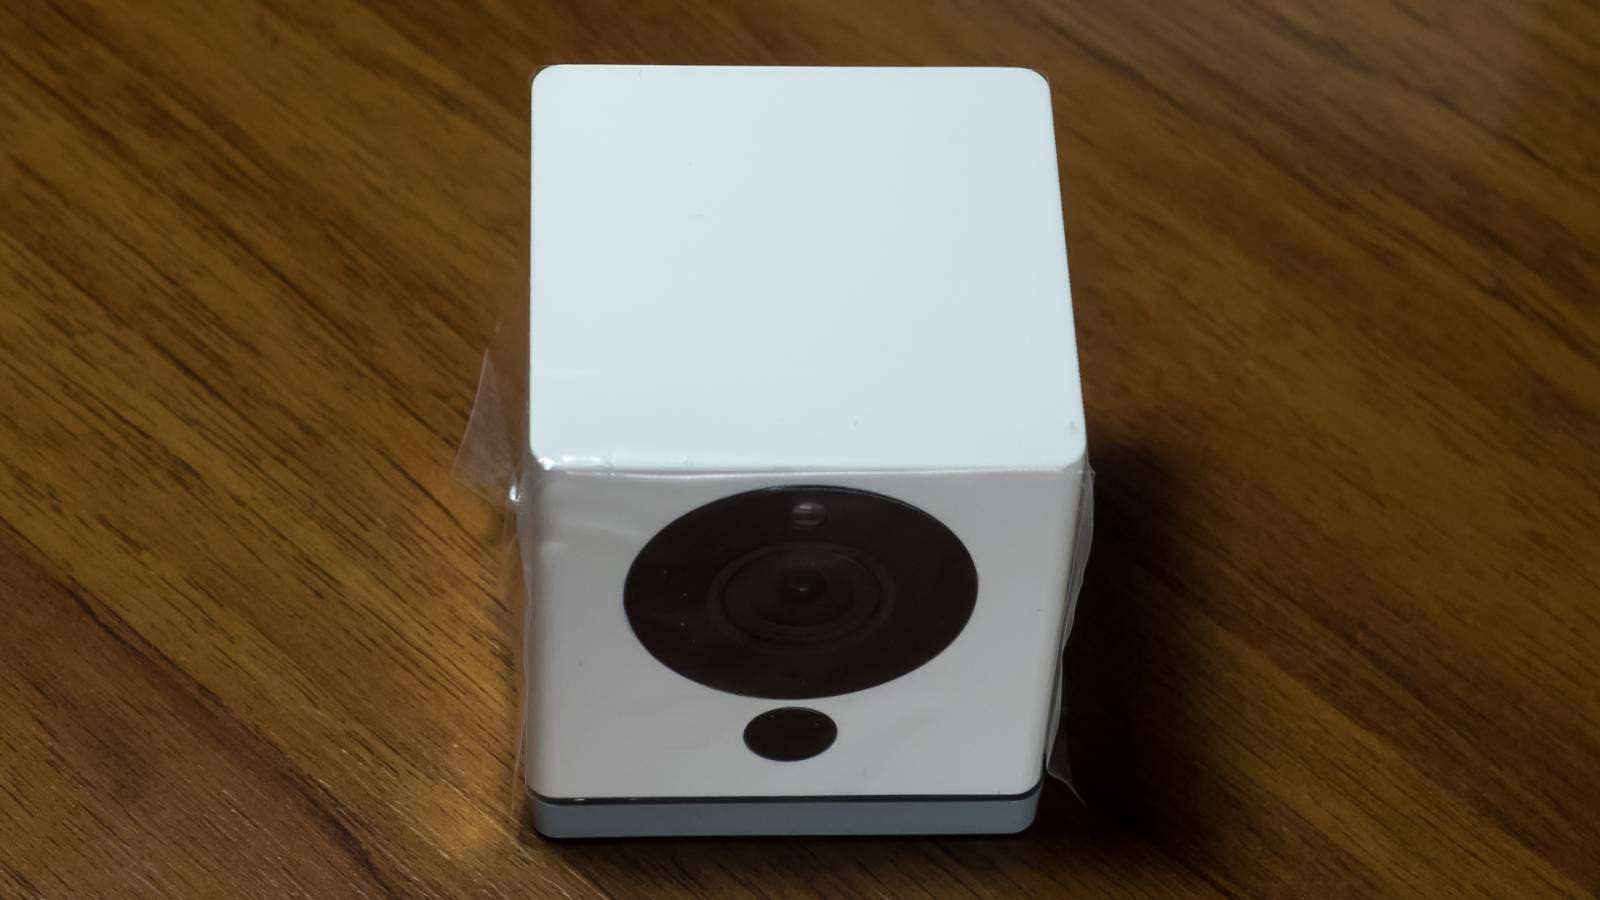 GearBest: Xiaomi Little Square Smart 1080P WiFi IP Camera - обзор, настройка, сценарии